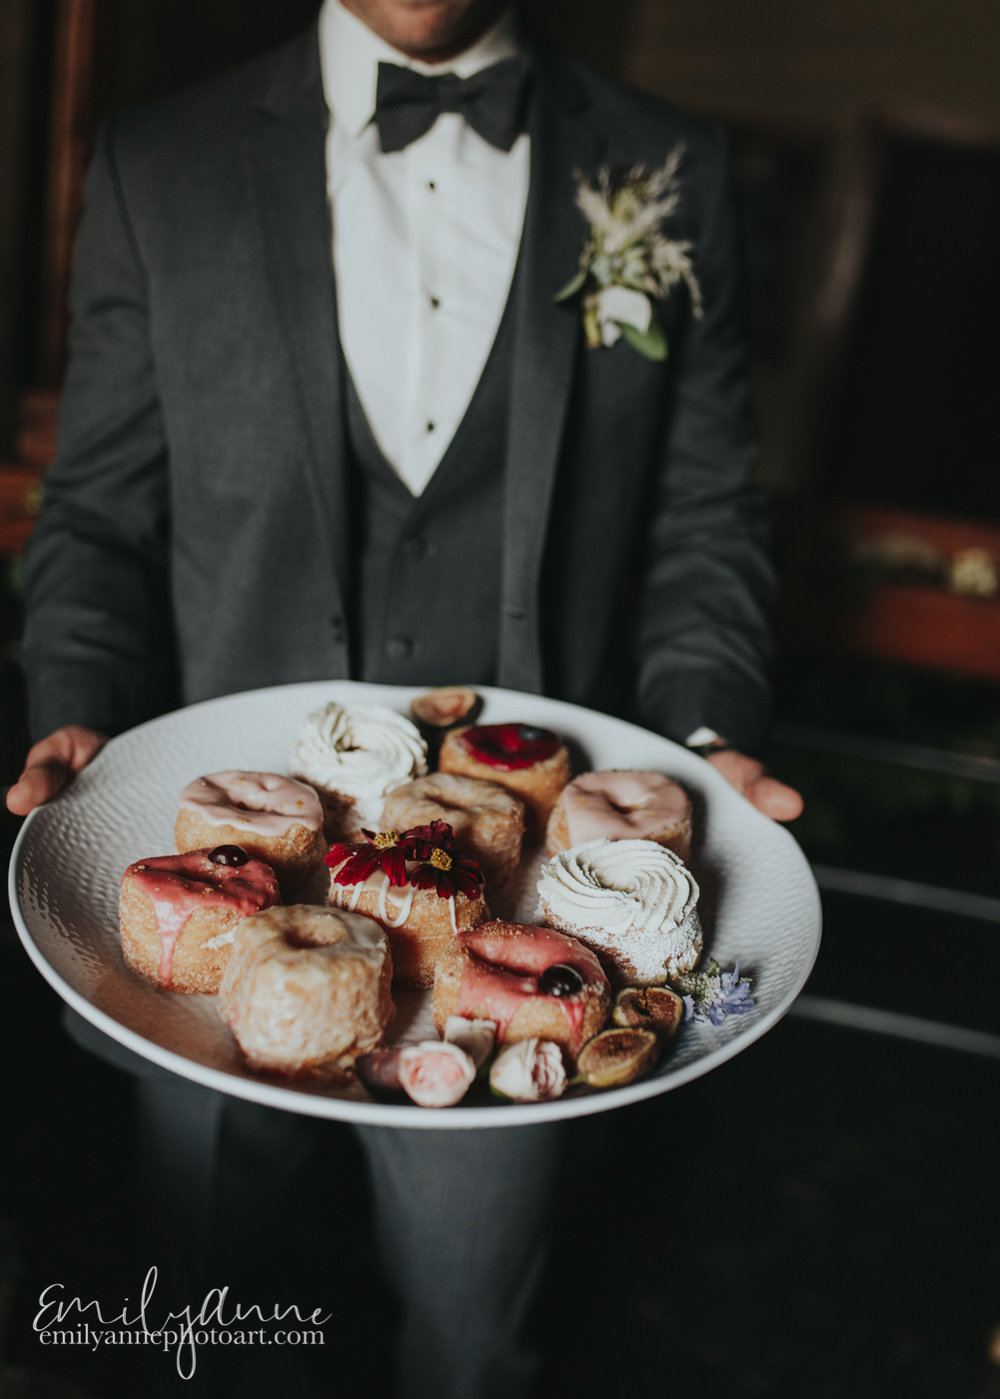 cute idea of groom holding plate of five daughters bakery donuts by top food/wedding photographer in Nashville Emily Anne